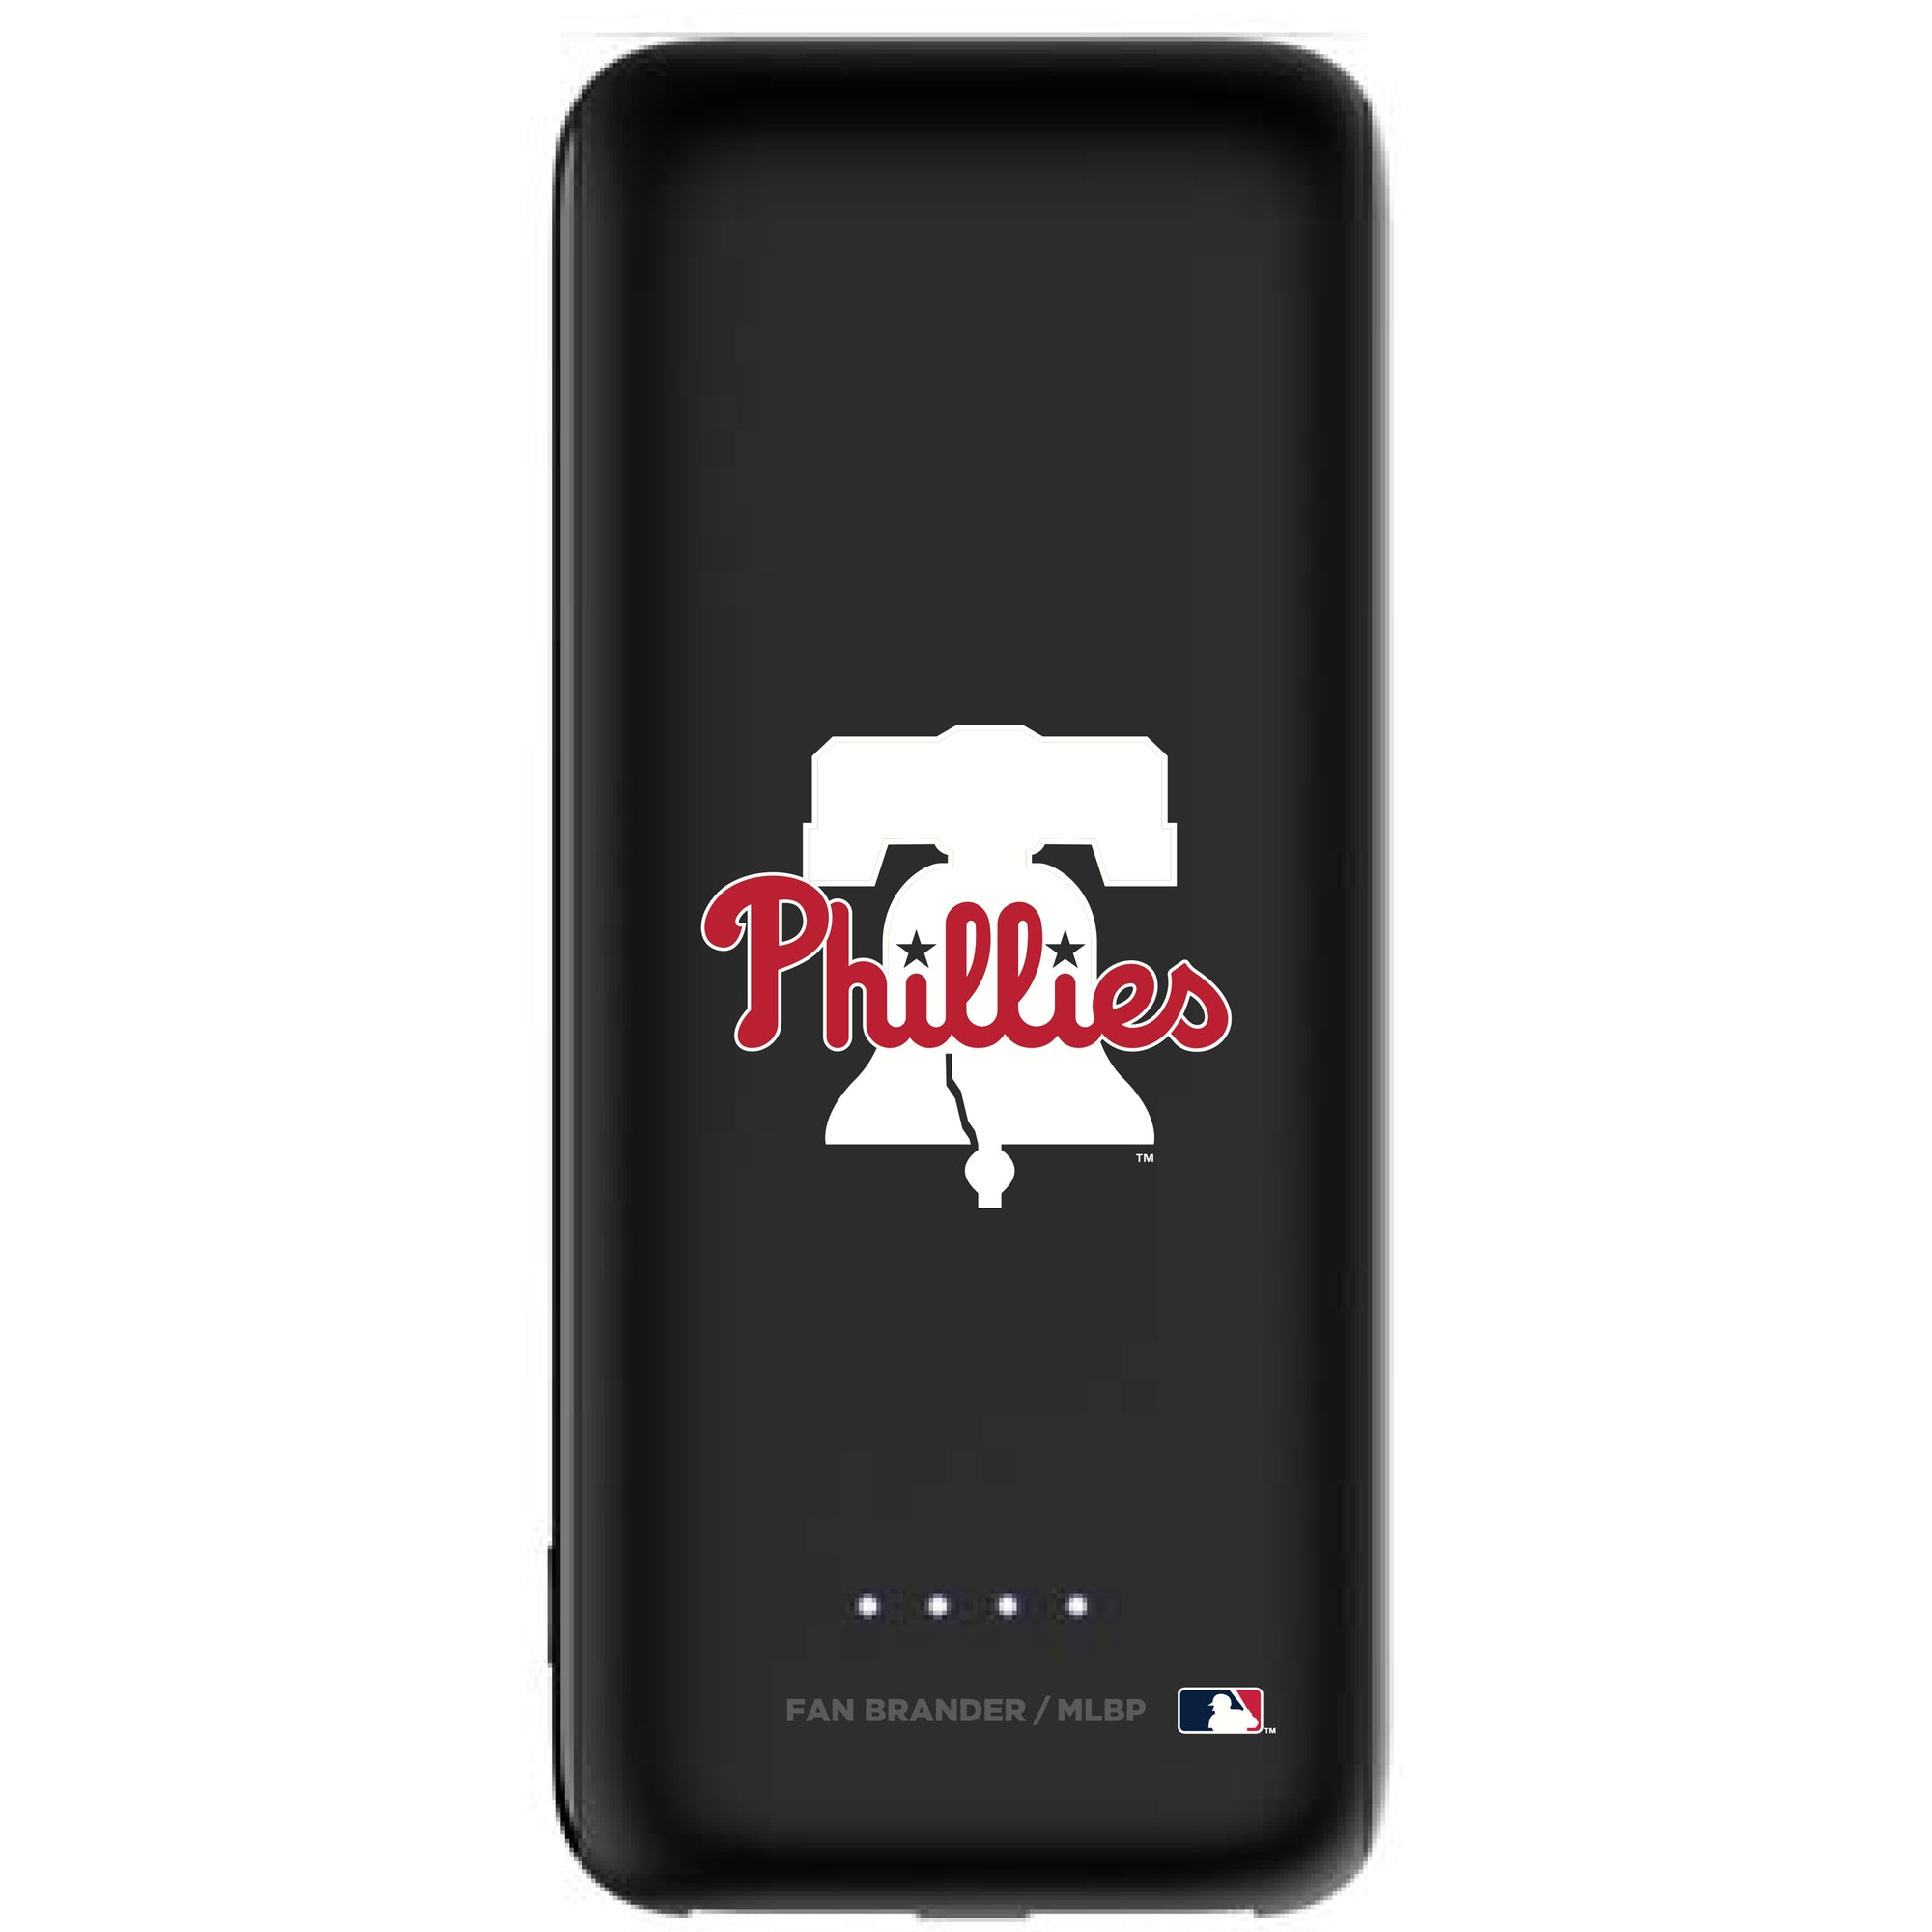 Philadelphia Phillies Power Boost Mini 5,200 mAH